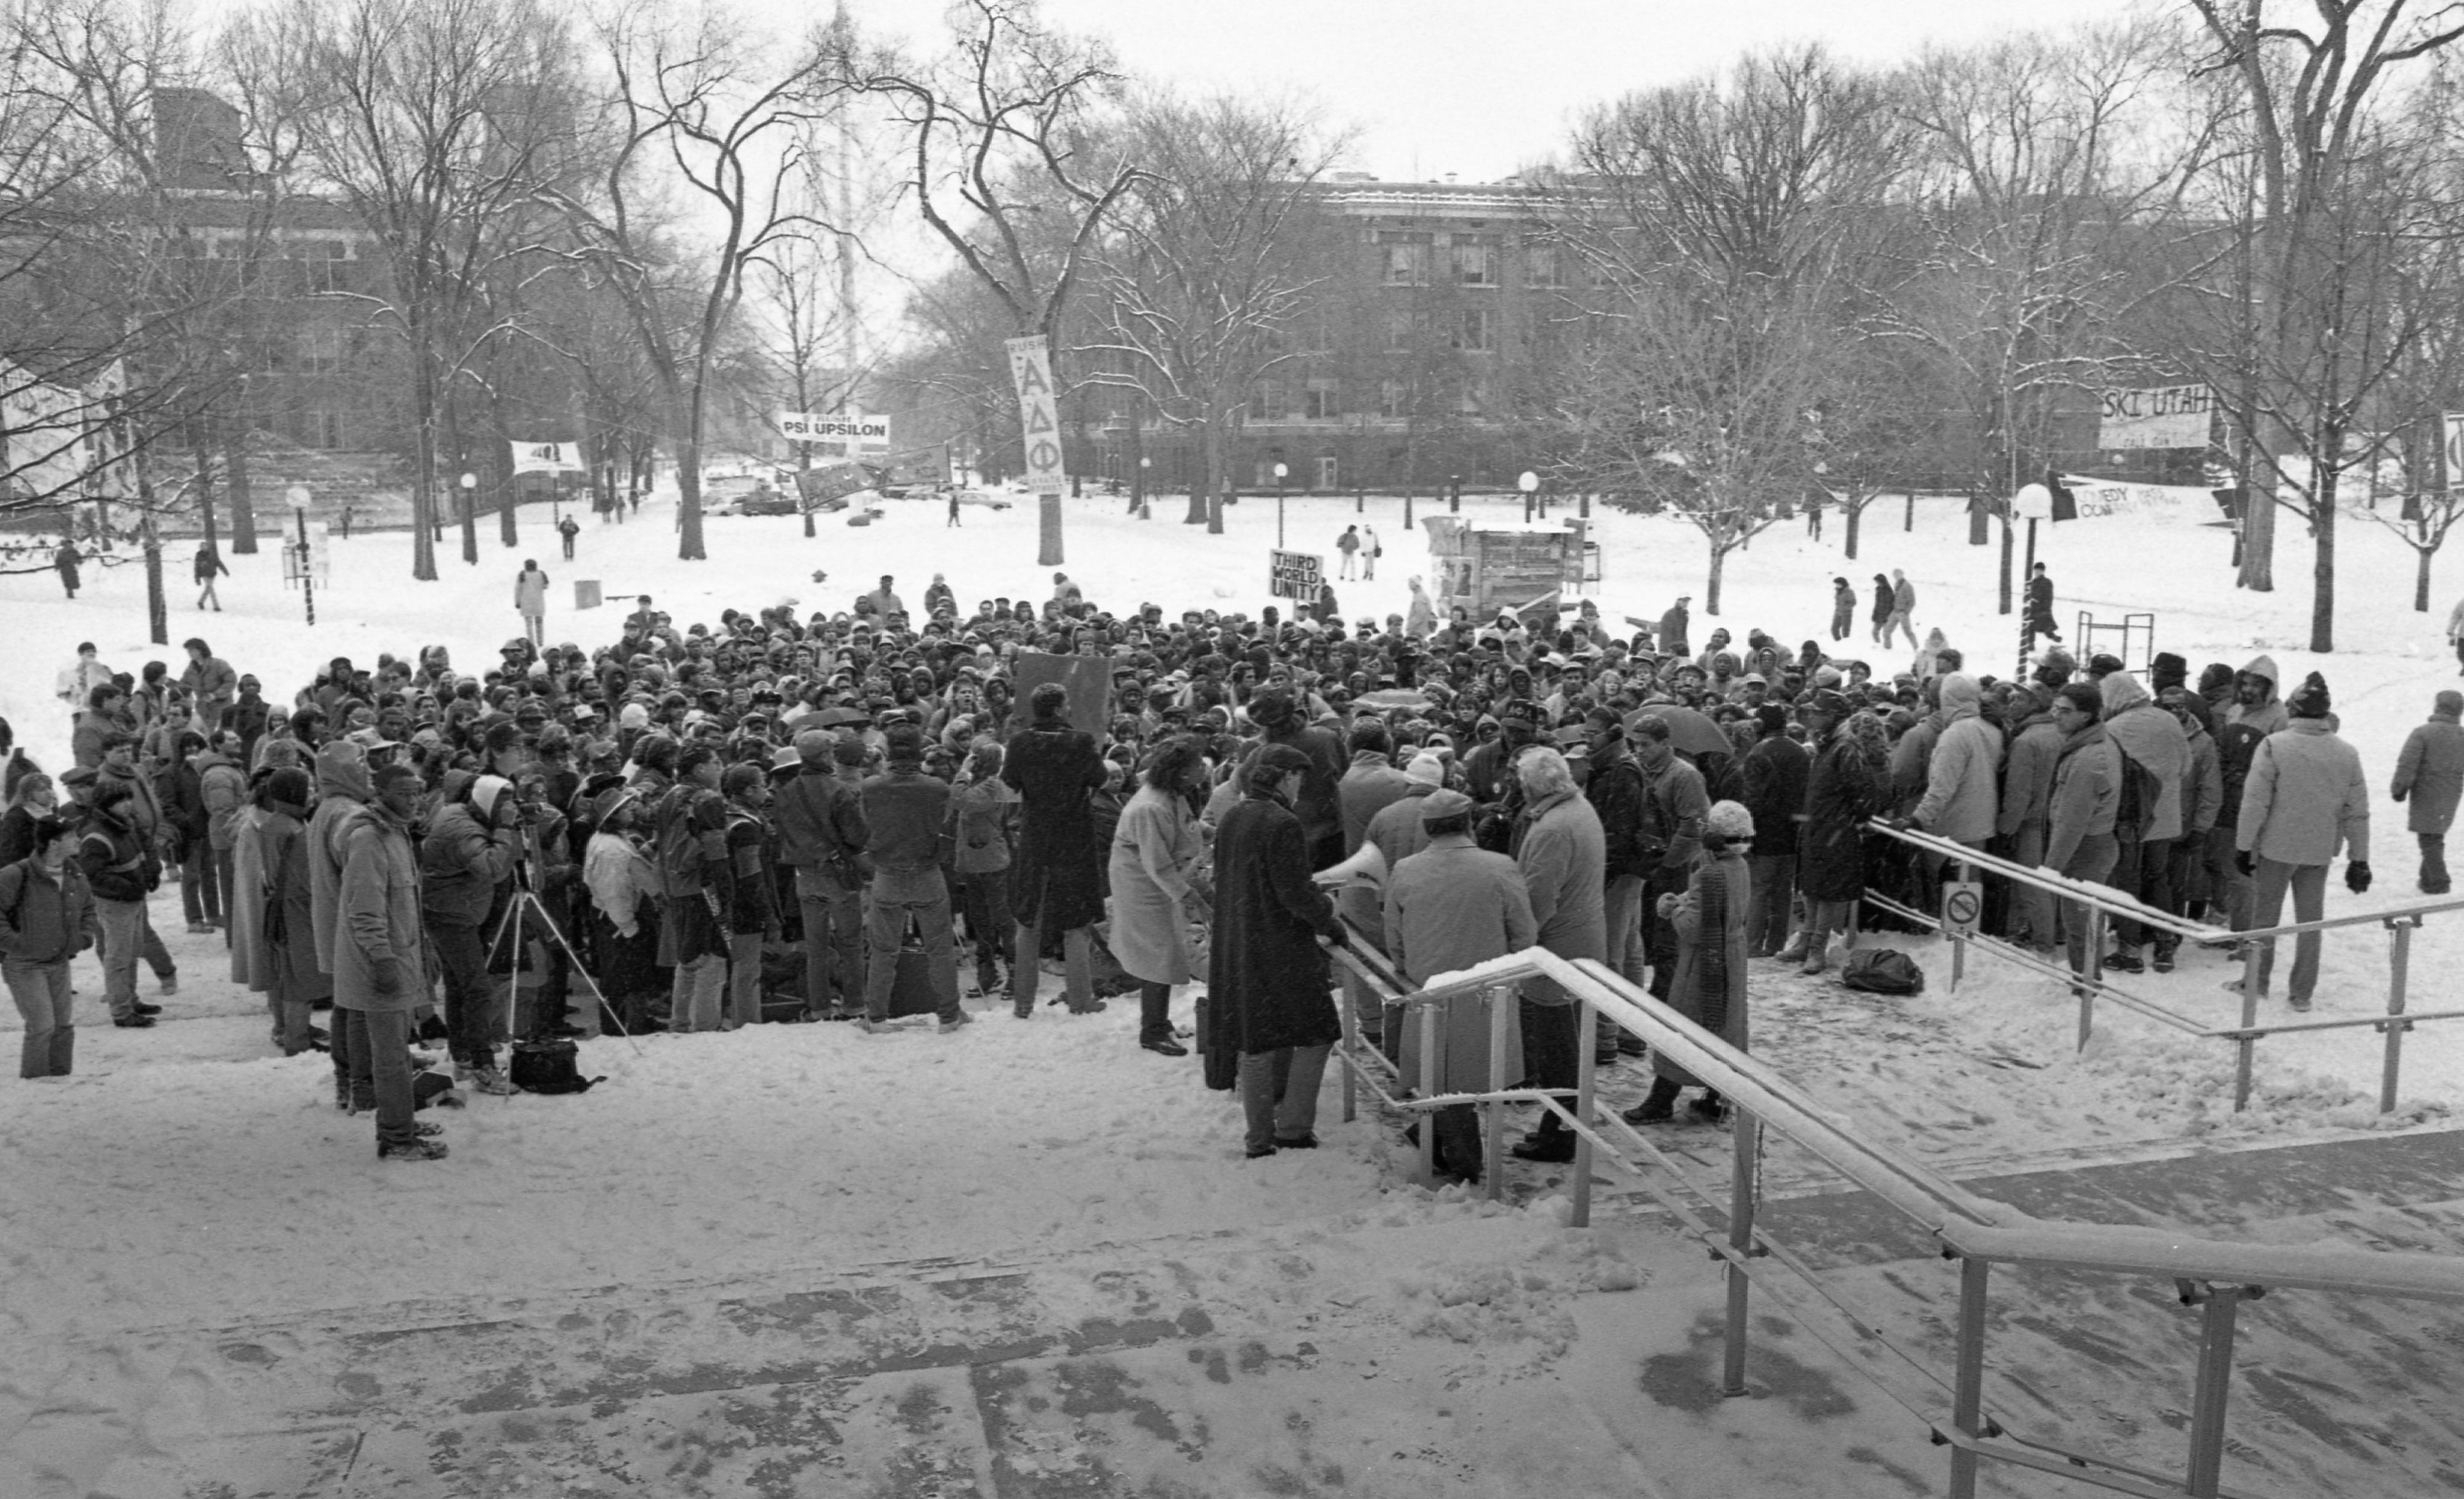 Martin Luther King Memorial Marchers Gather On The U-M Diag, January 1987 image